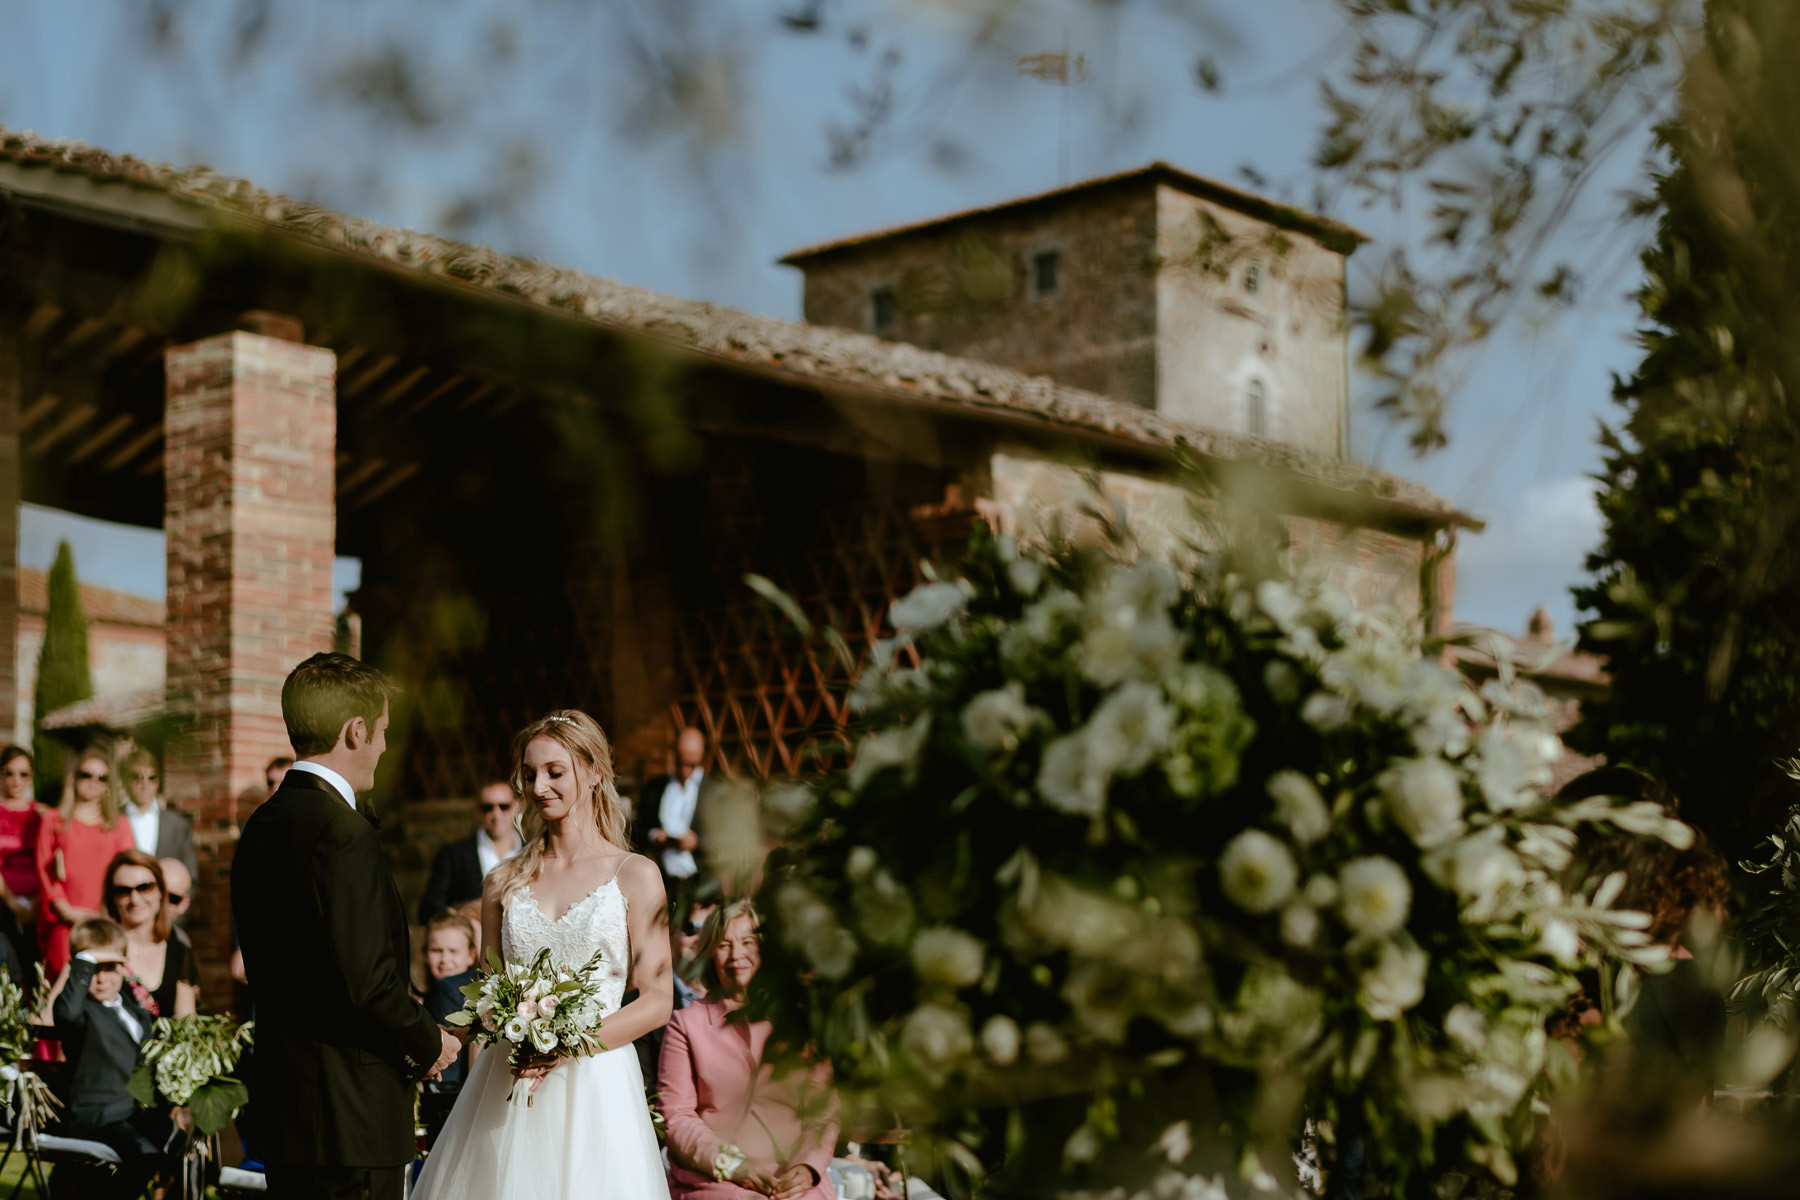 Siena wedding photographer borgo scopeto outdoor rustic ceremony